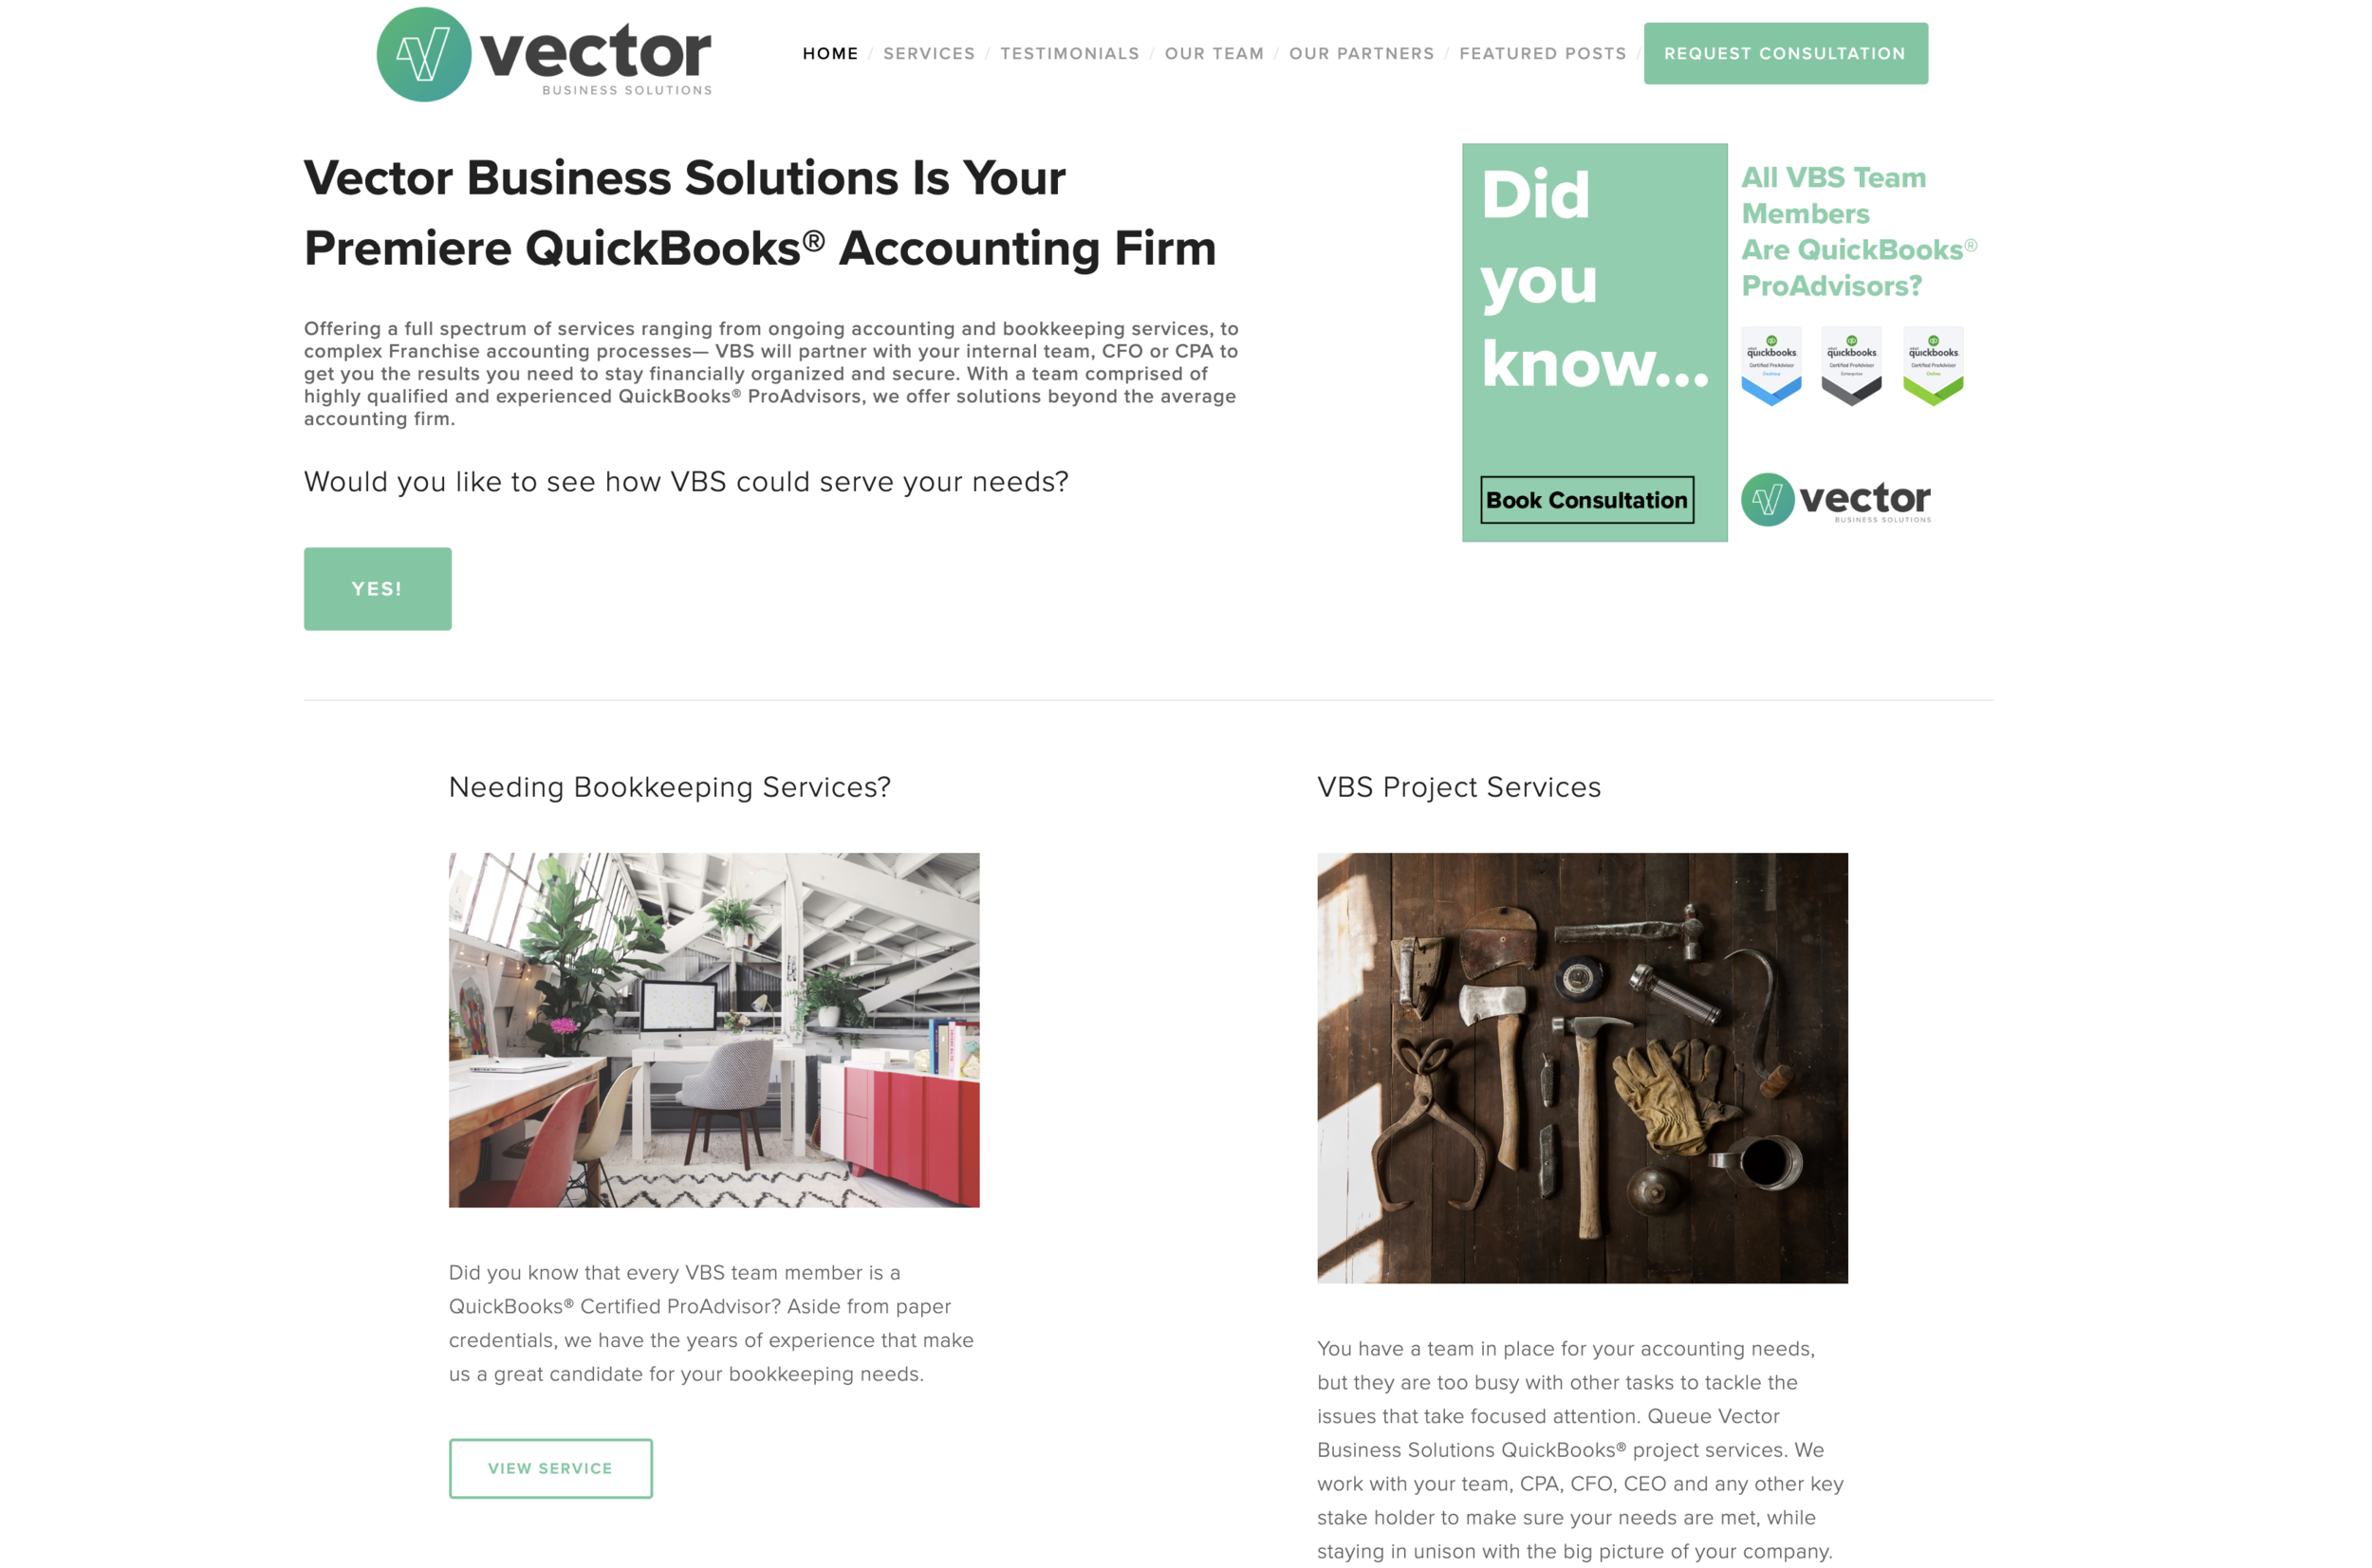 Client: Vector Business Solutions — The Poppyfield Agency